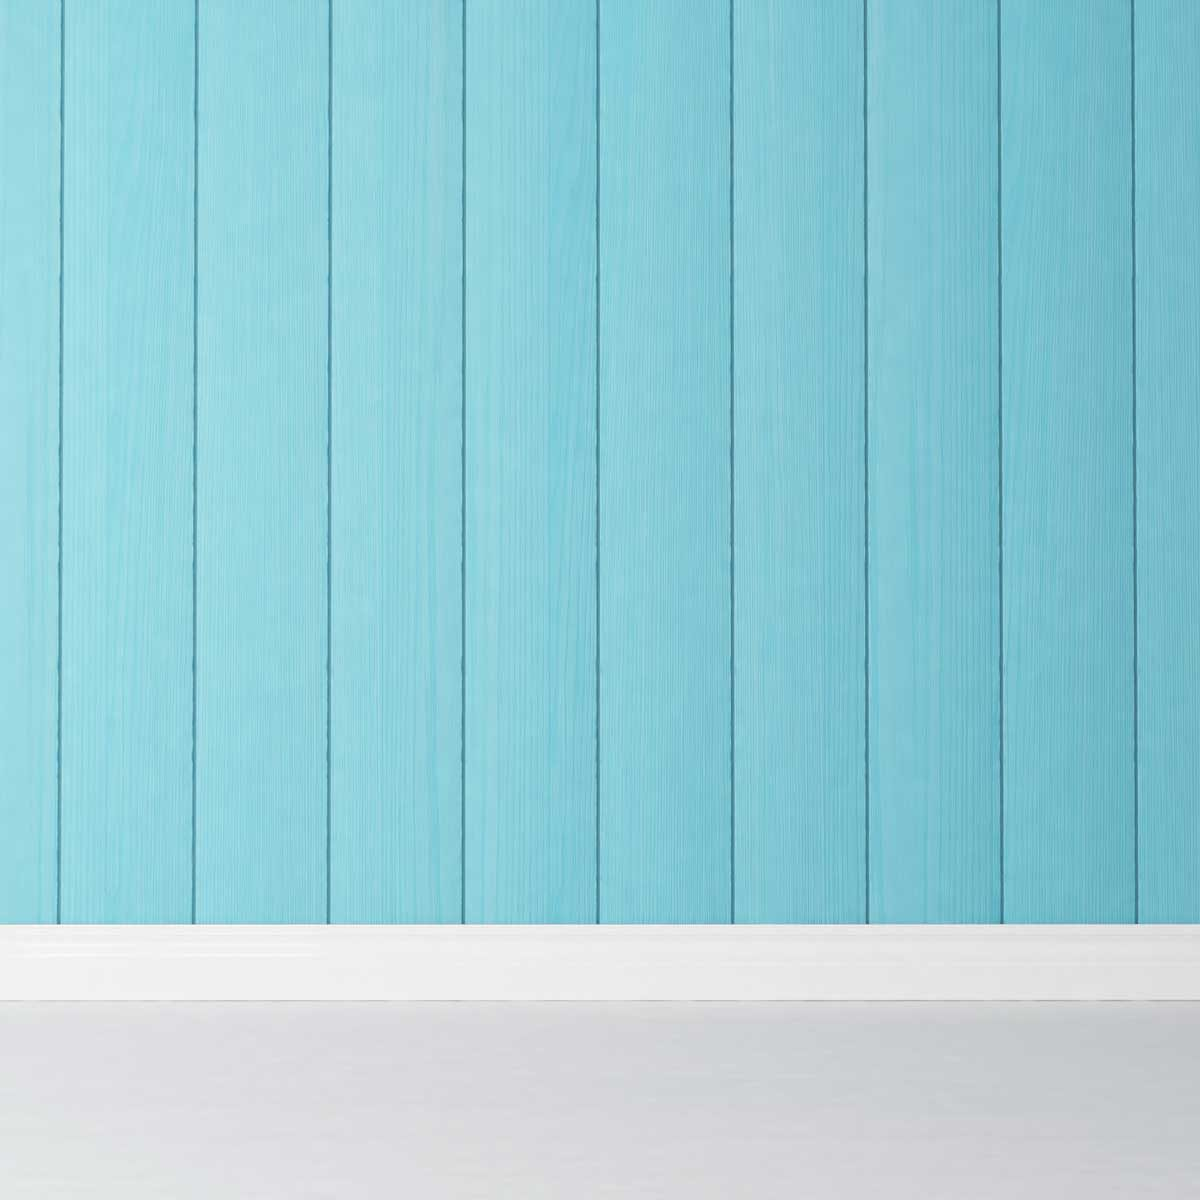 How To Paint Wood Paneling,Pier Wall Unit Bedroom Furniture